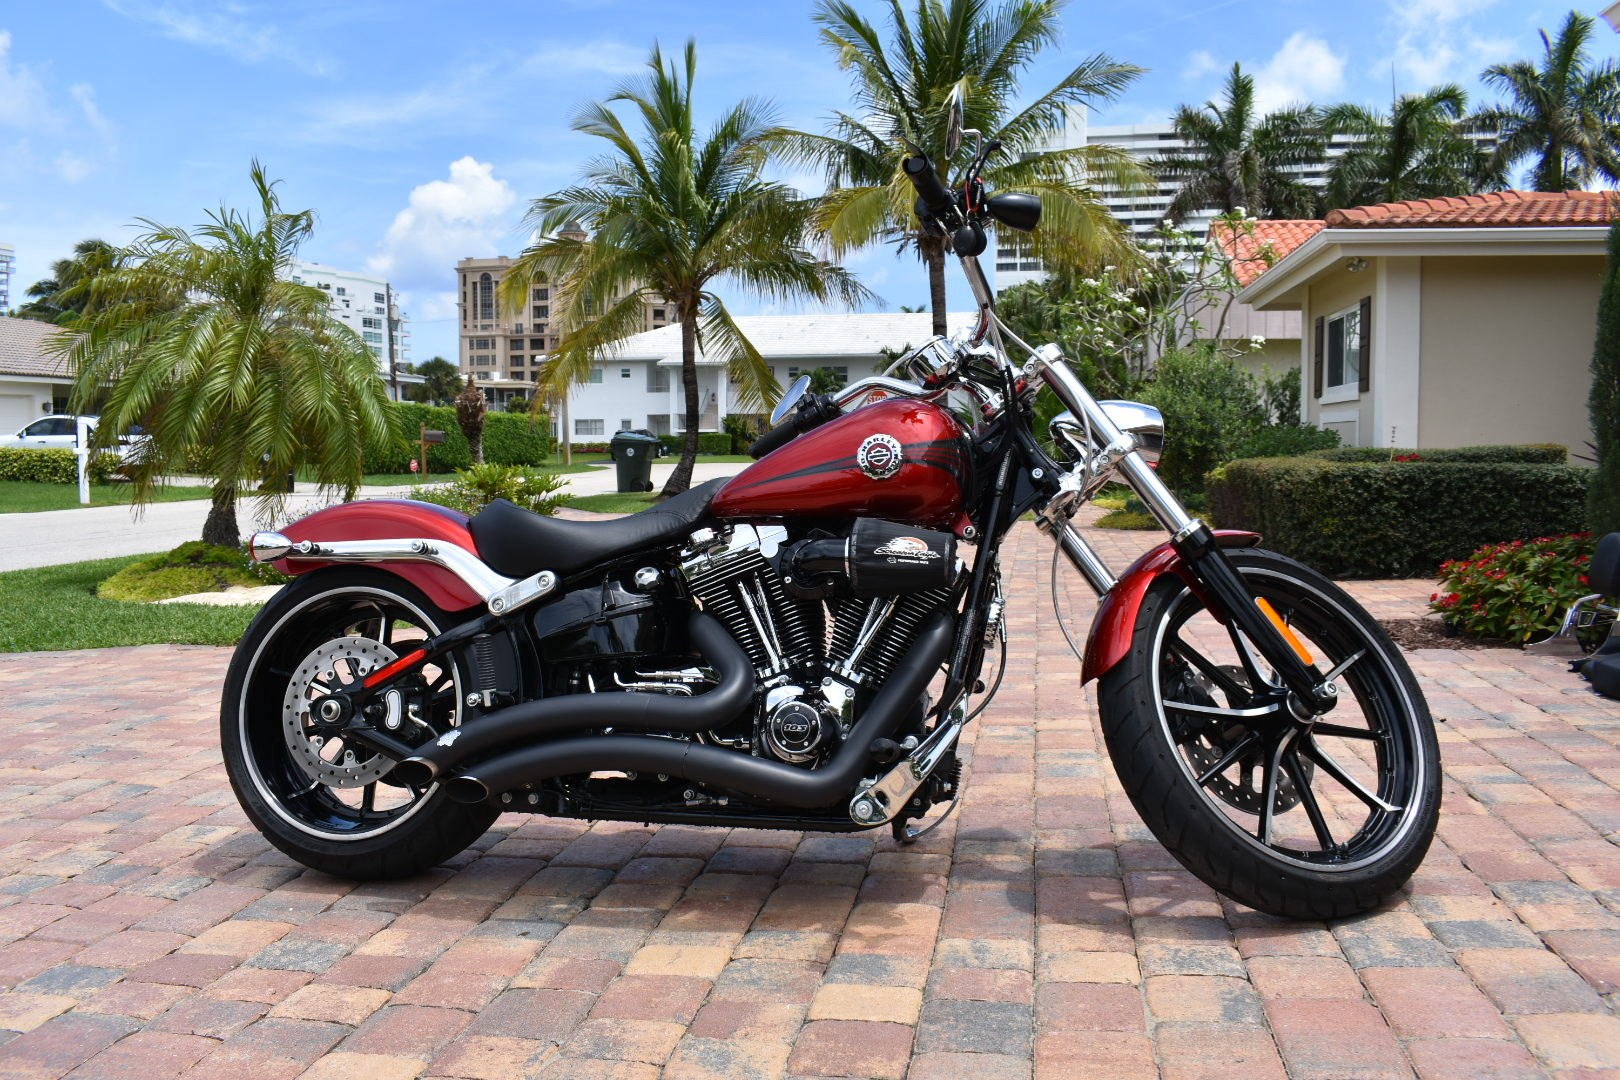 2017 Wide Glide For Sale Texas >> All New & Used Harley-Davidson® Softail Breakout® For Sale (708 Bikes, Page 1) | ChopperExchange